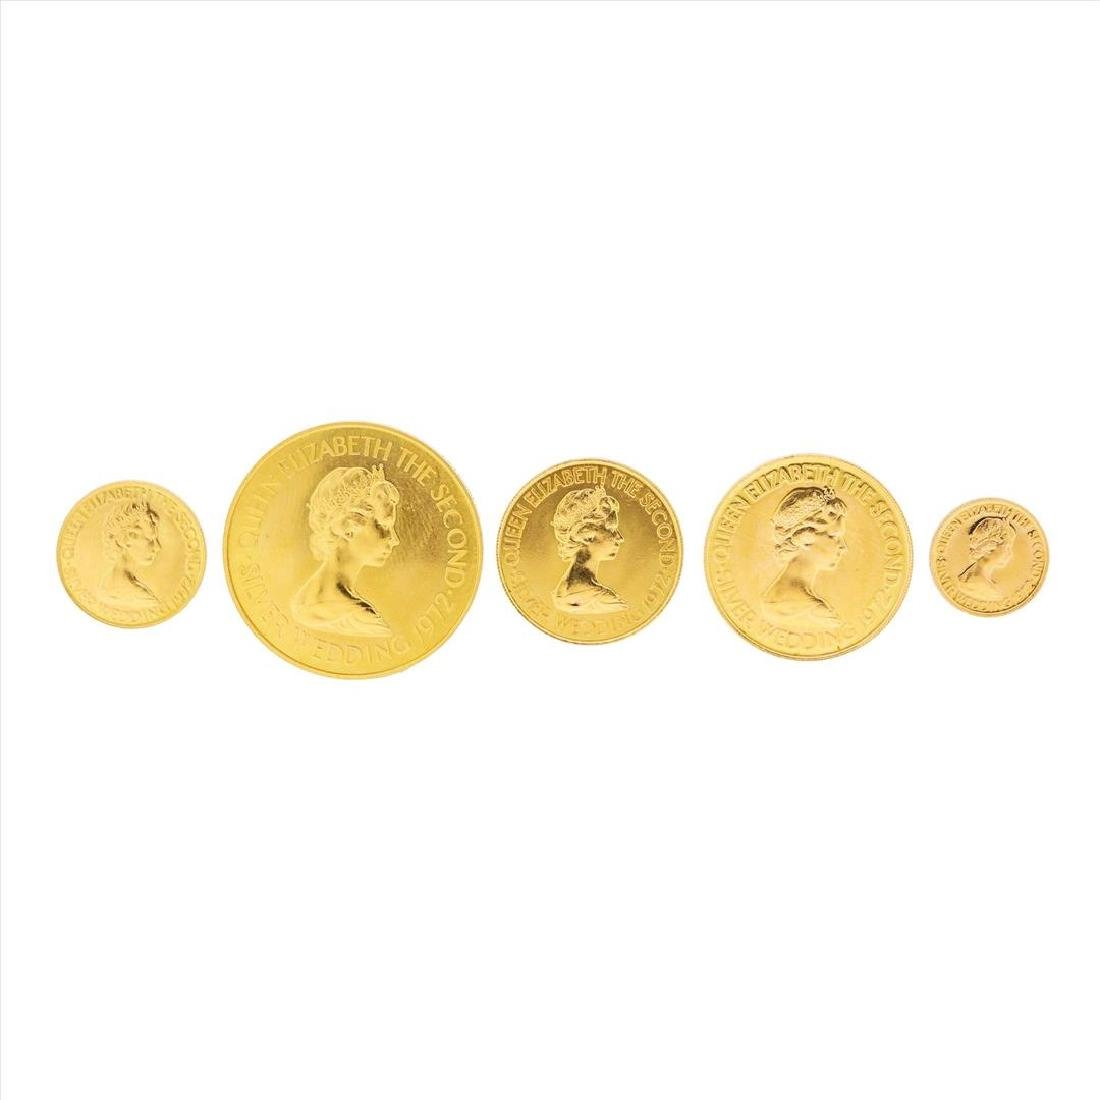 Set of (5) 1972 Bailiwick of Jersey Gold Coins